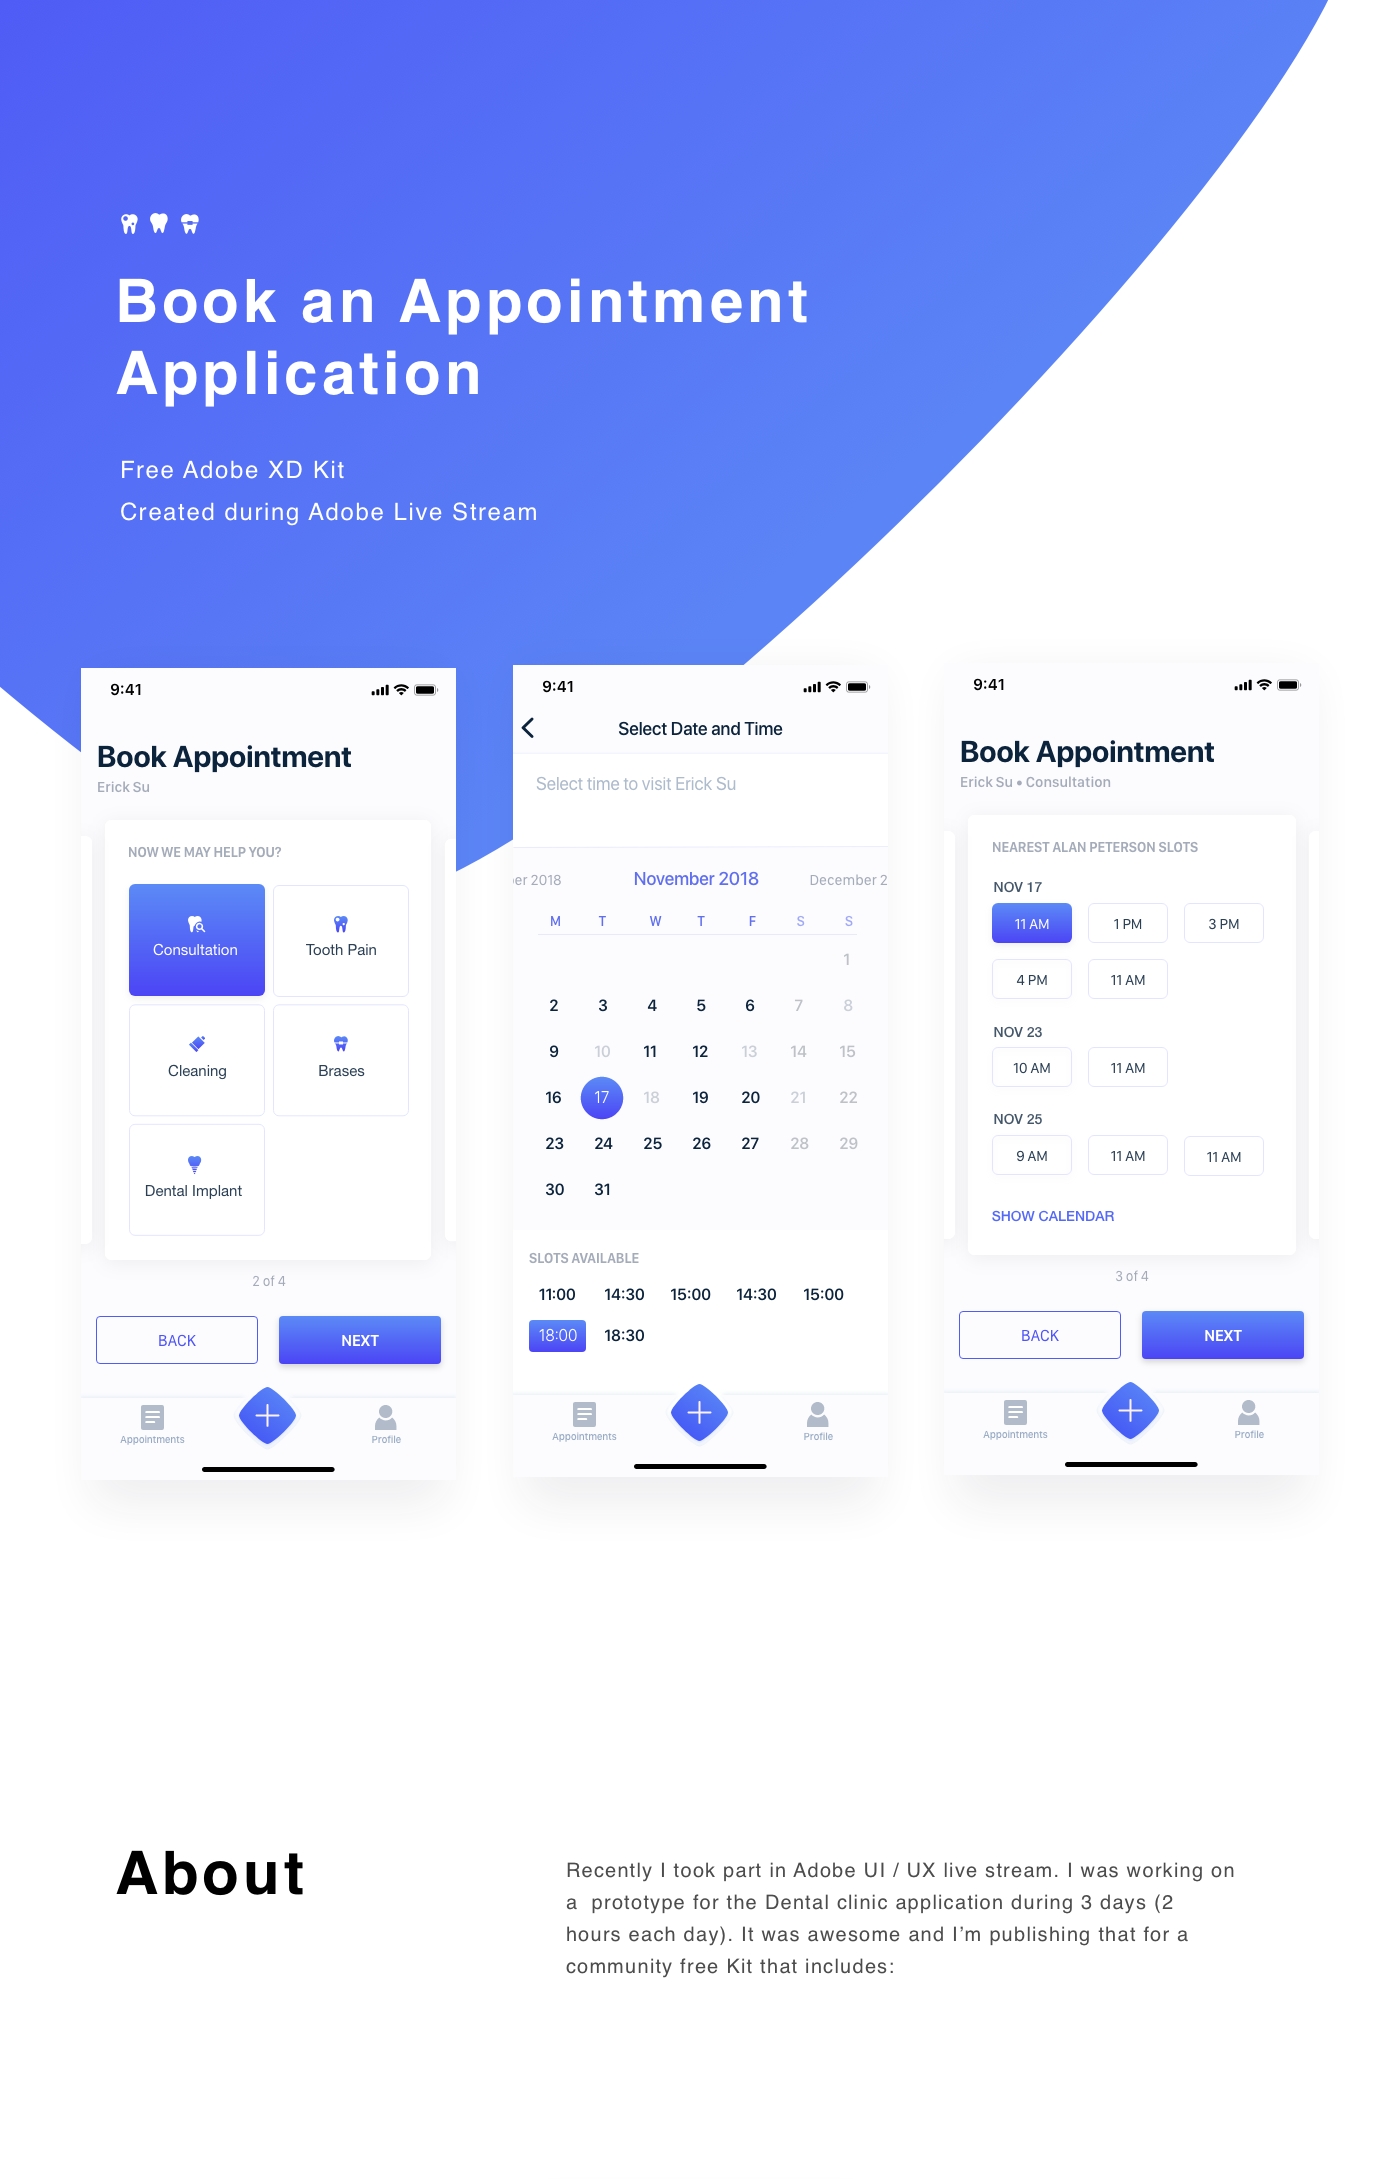 Book an Appointment  Free XD Template (Adobe Live) on Behance